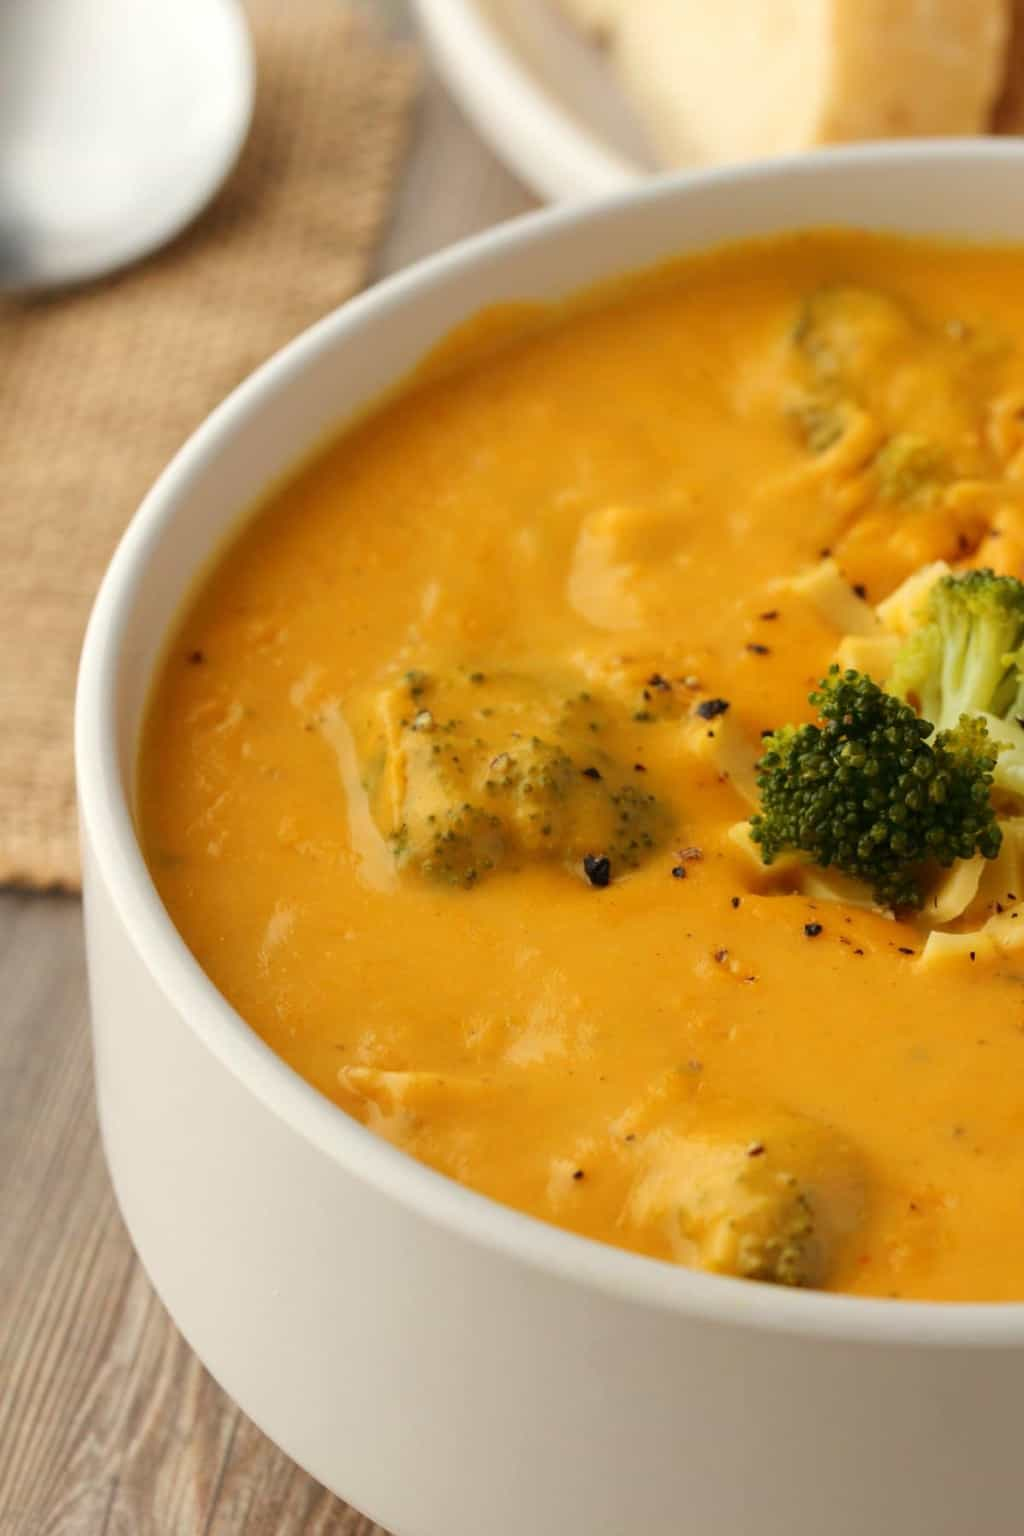 Vegan Broccoli Cheese Soup in a white bowl.